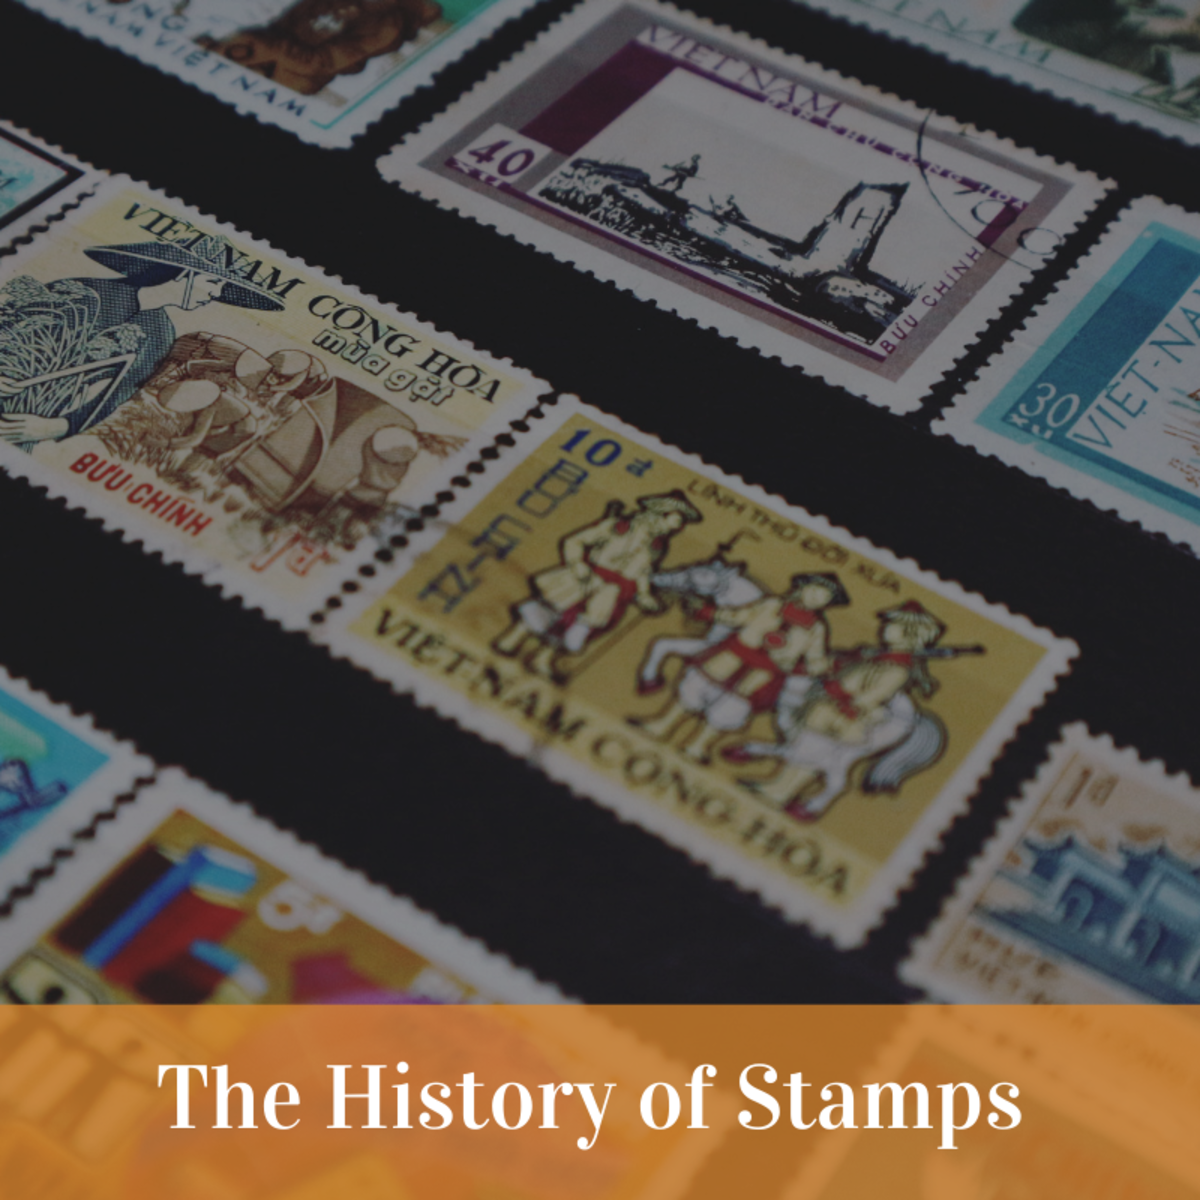 Stamp Collecting: The History and Evolution of the World's Greatest Hobby